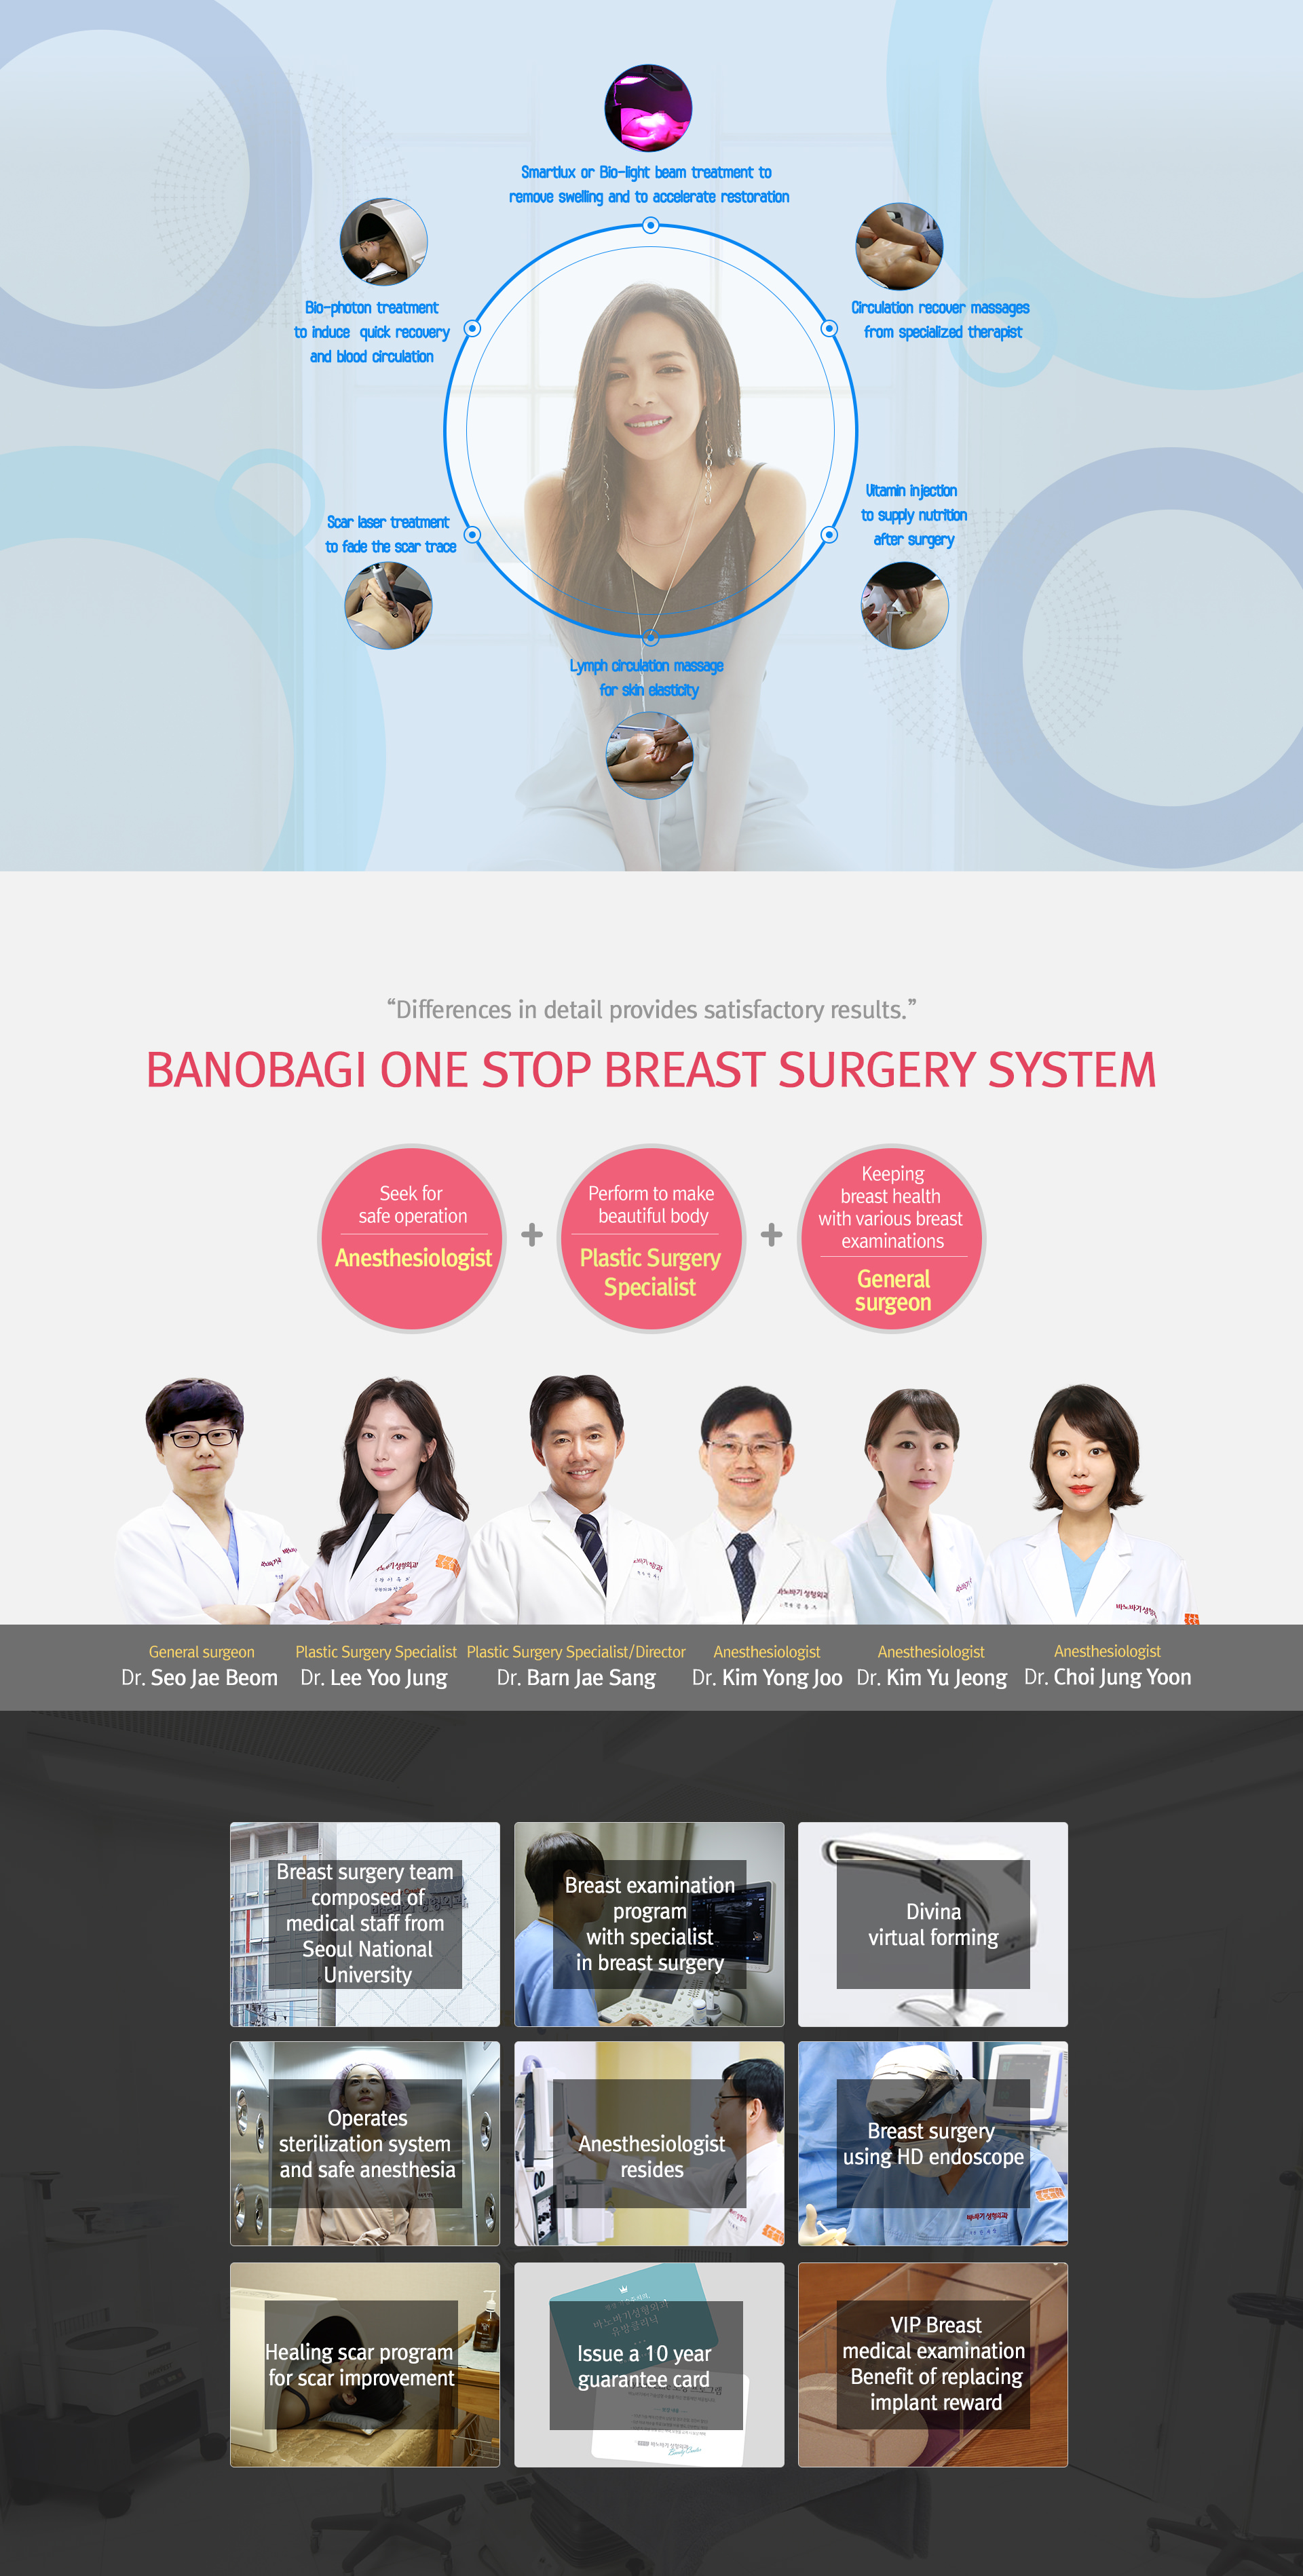 Differences in detail provides satisfactory results. - BANOBAGI ONE STOP BREAST SURGERY SYSTEM